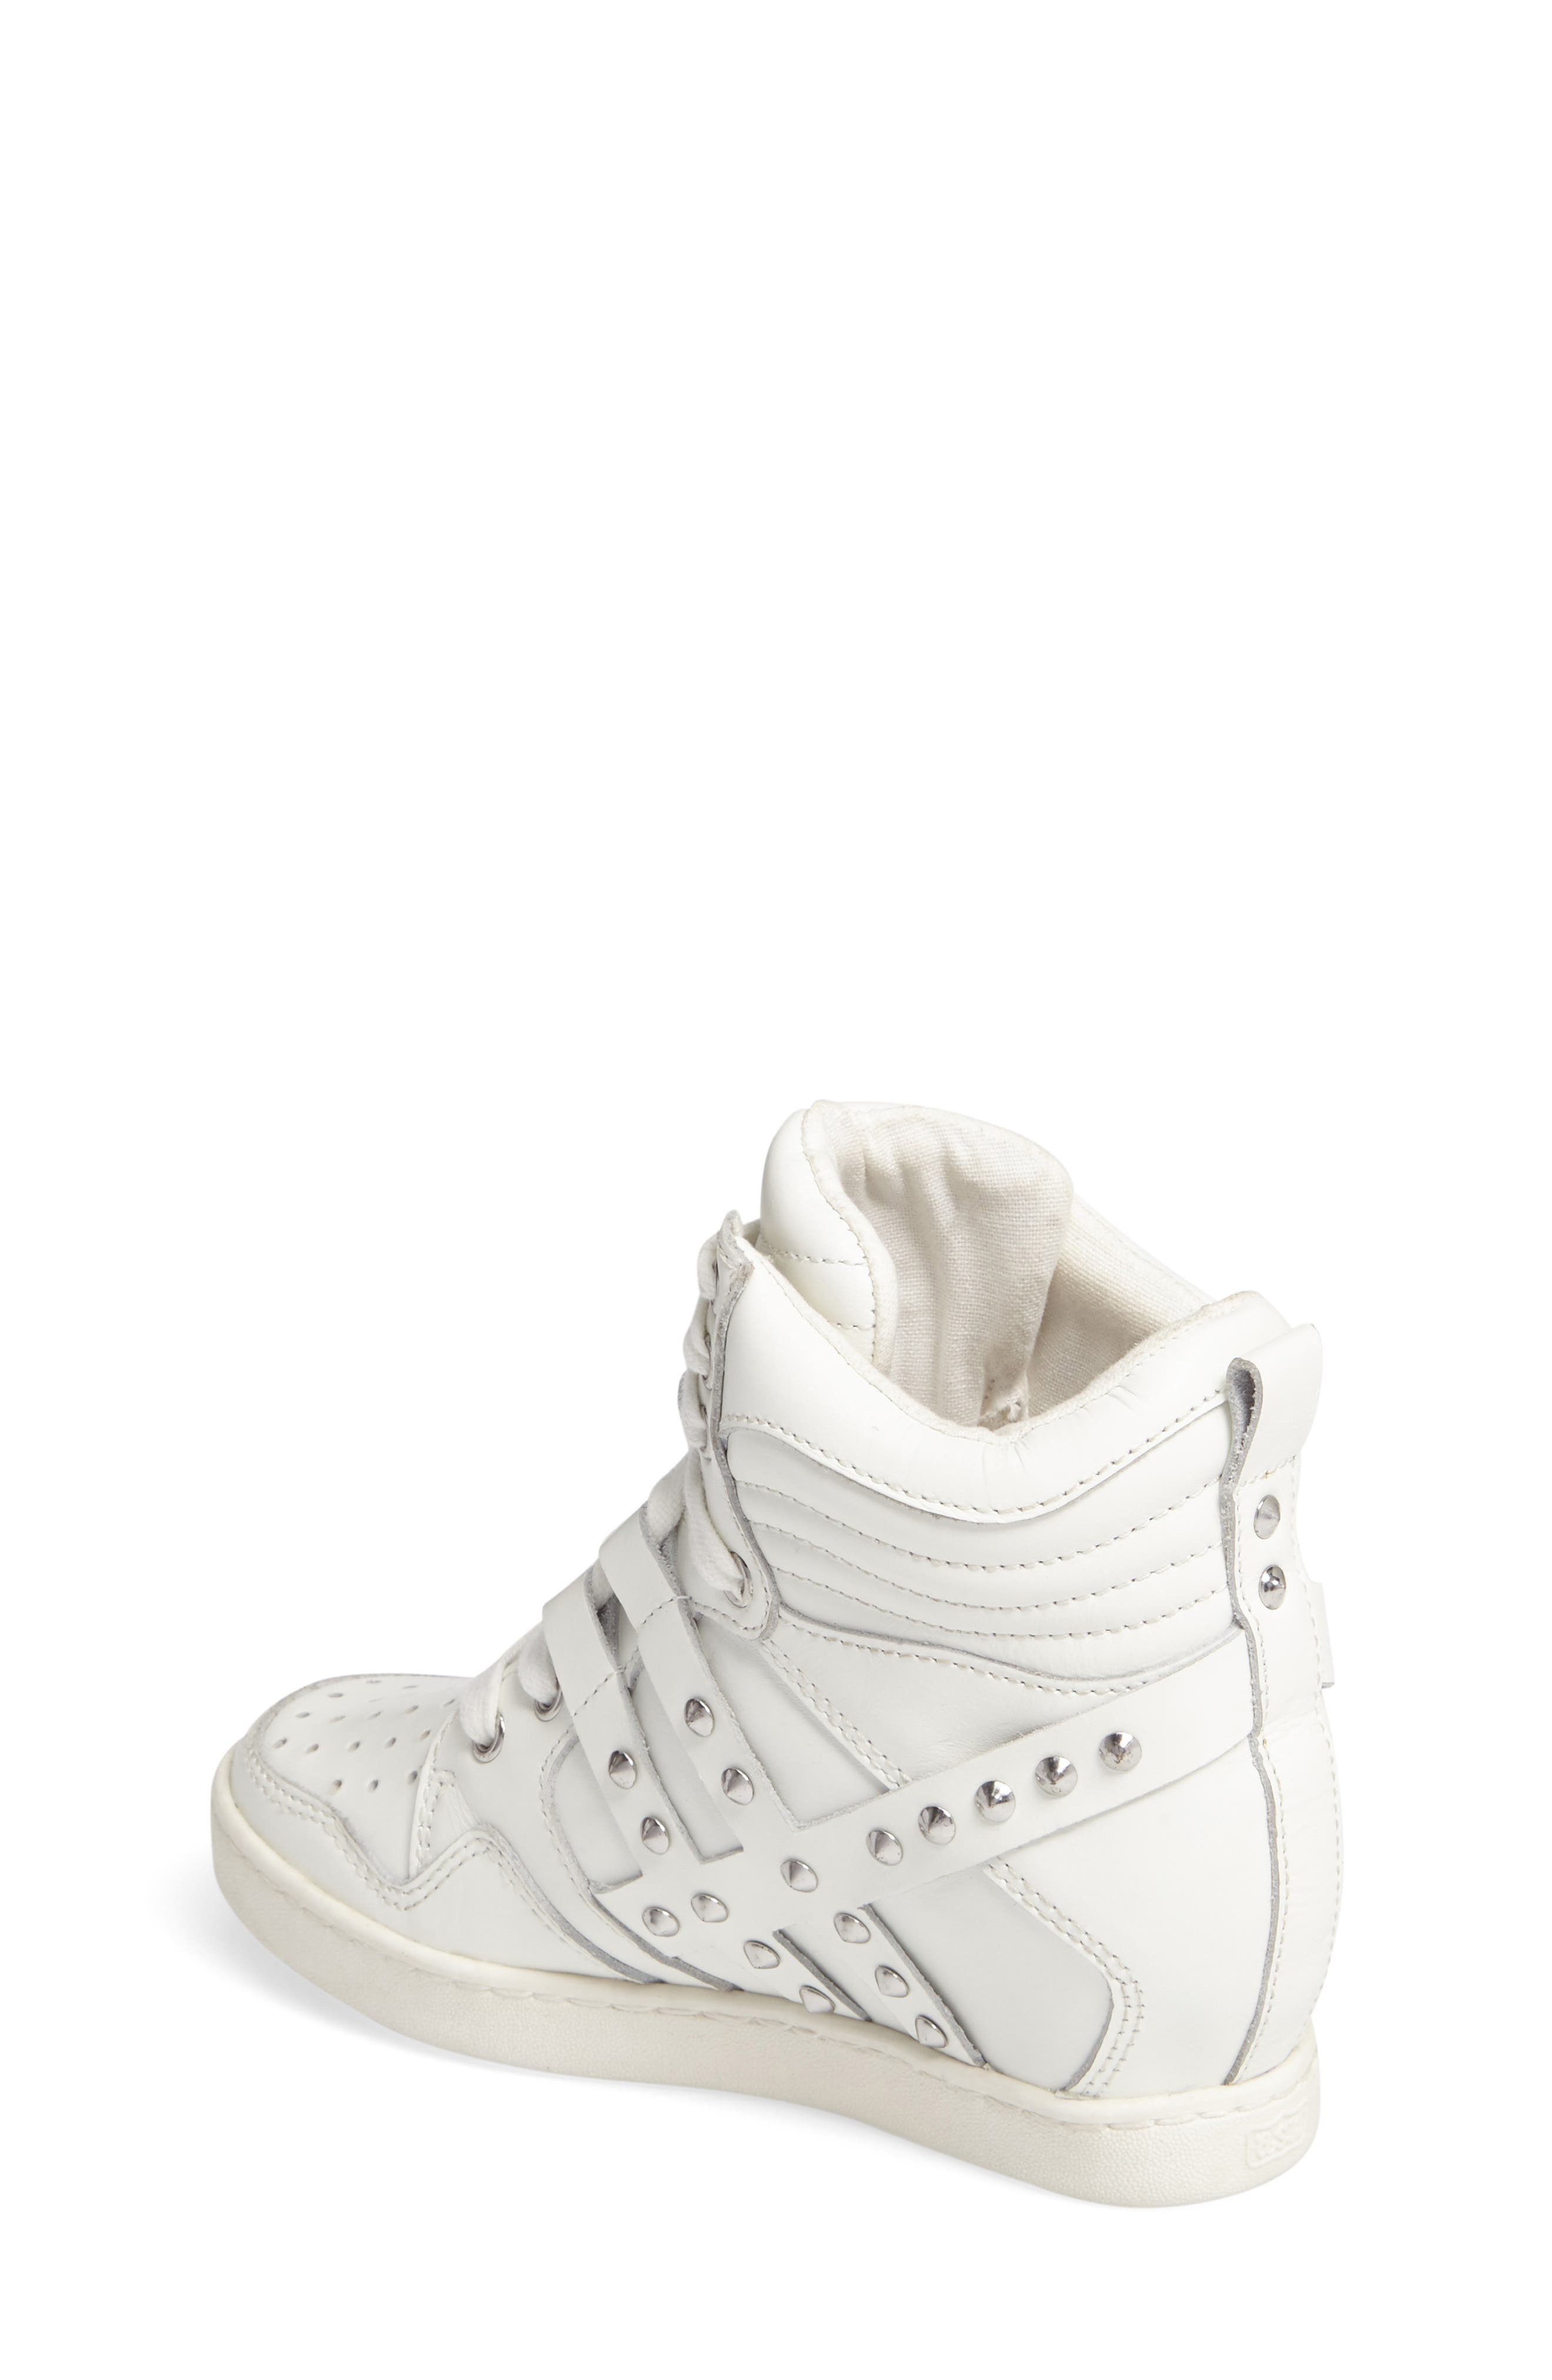 Boogie Studs High Top Sneaker,                             Alternate thumbnail 2, color,                             100